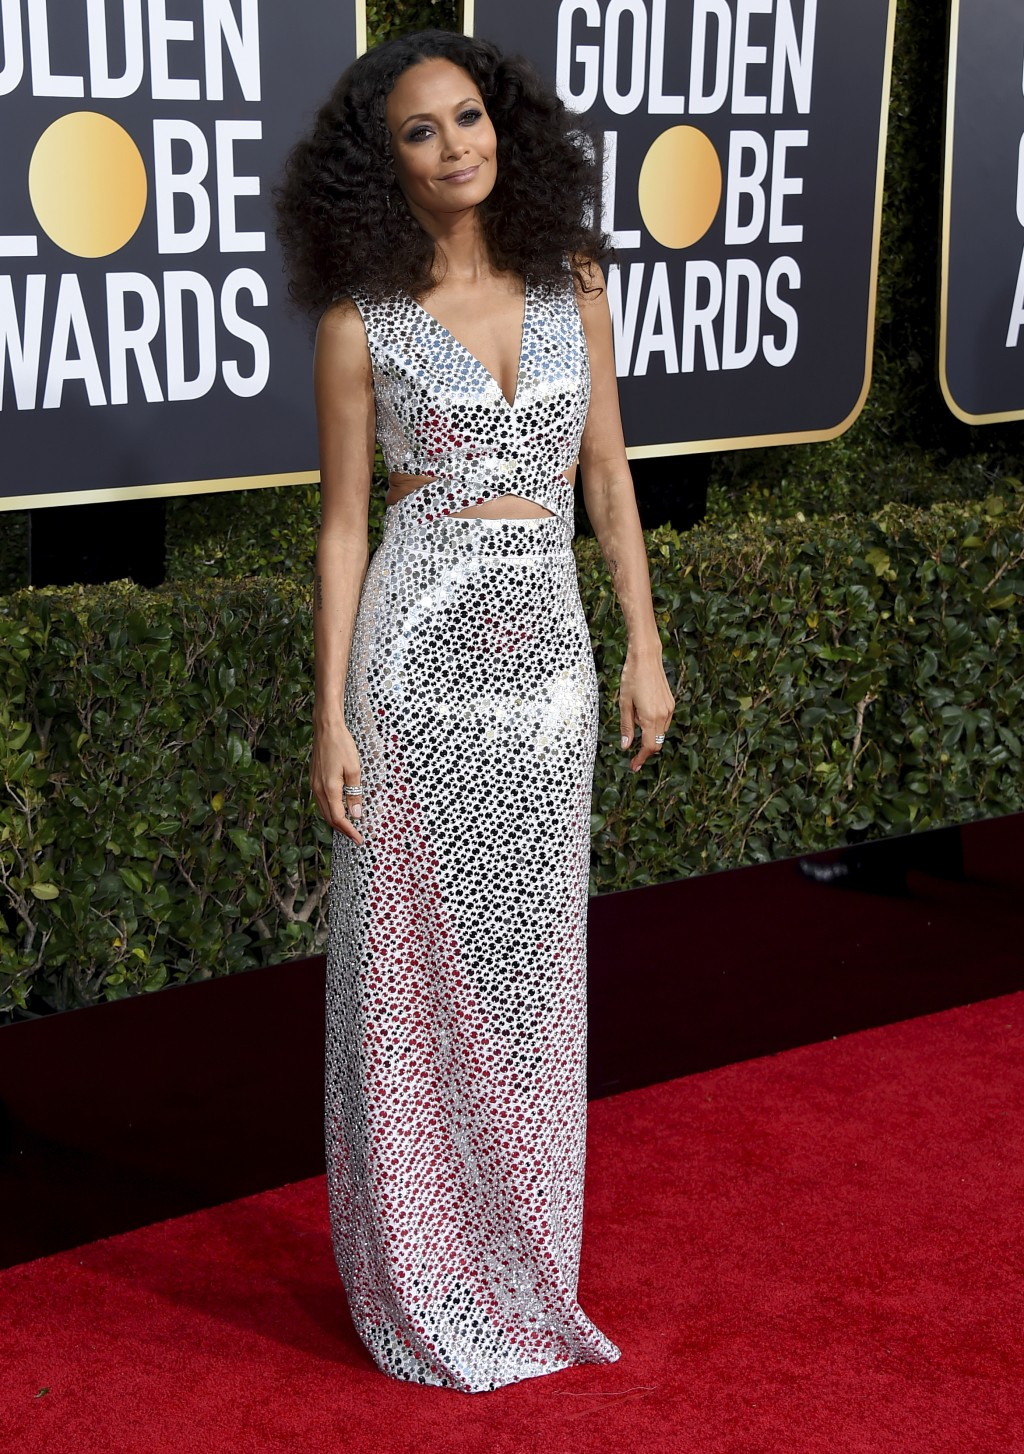 Thandie Newton arrives at the 76th annual Golden Globe Awards at the Beverly Hilton Hotel on Sunday, Jan. 6, 2019, in Beverly Hills, Calif. (Photo by